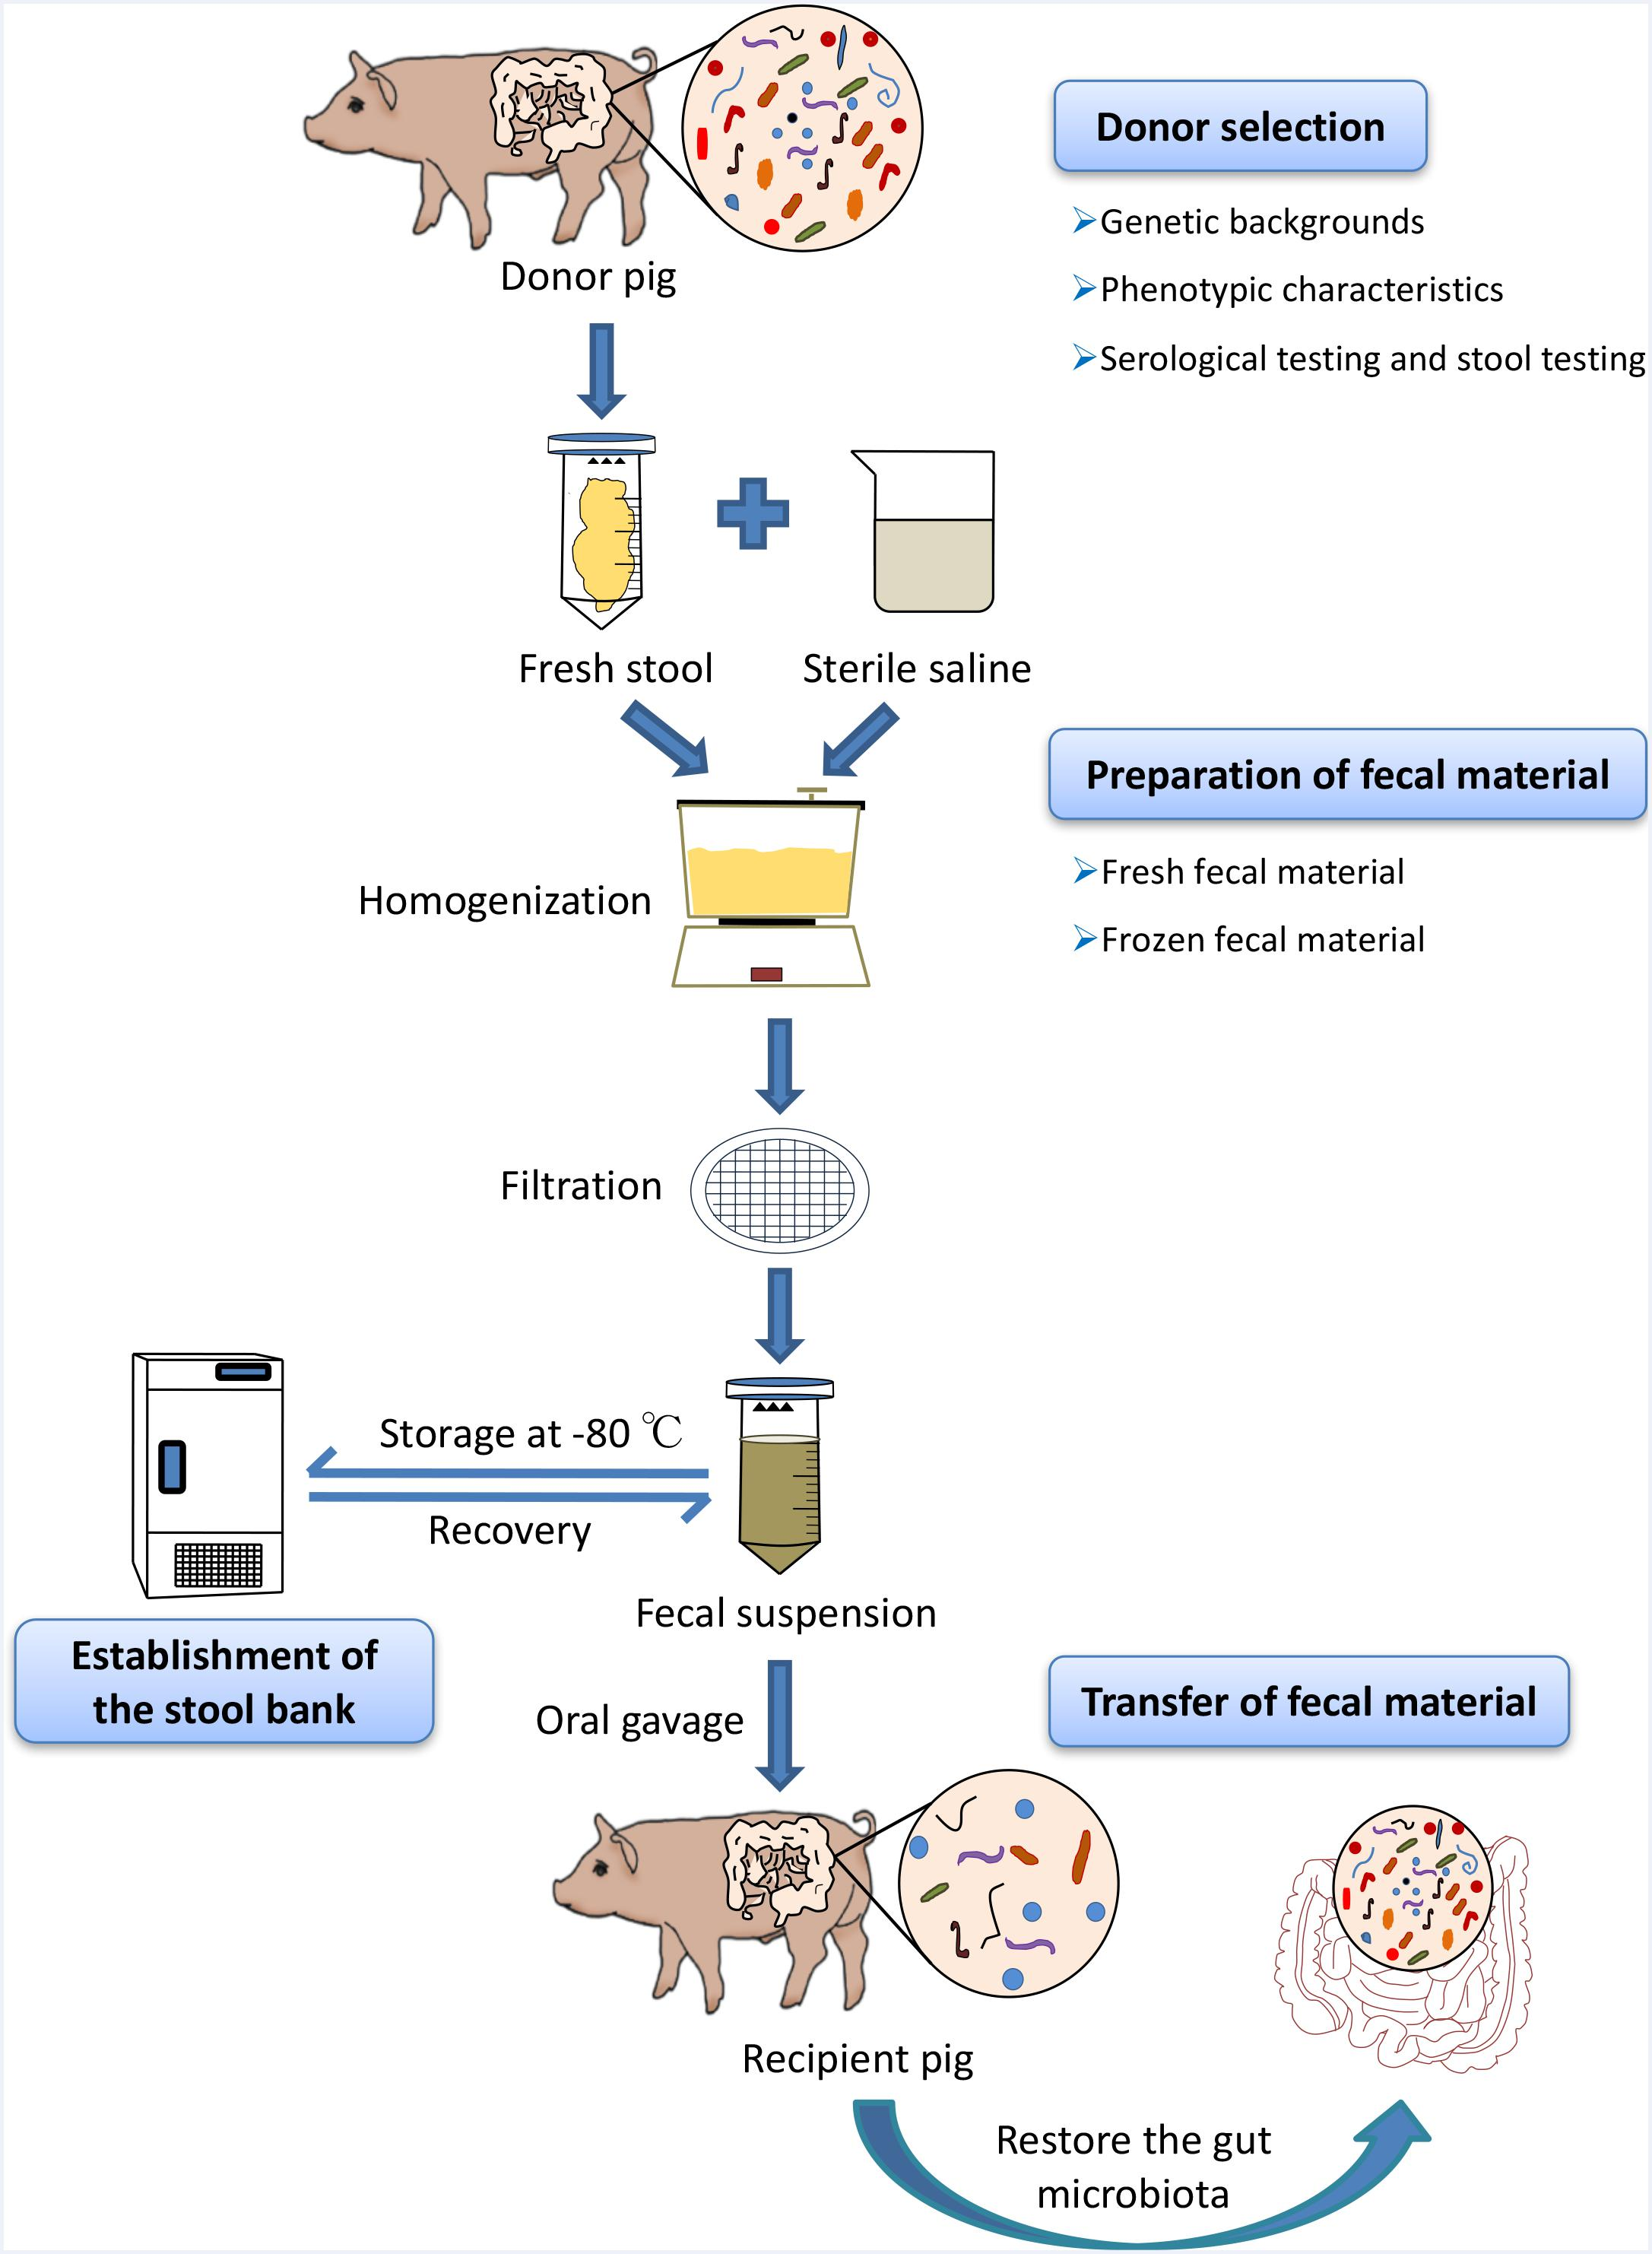 Frontiers Standardized Preparation For Fecal Microbiota